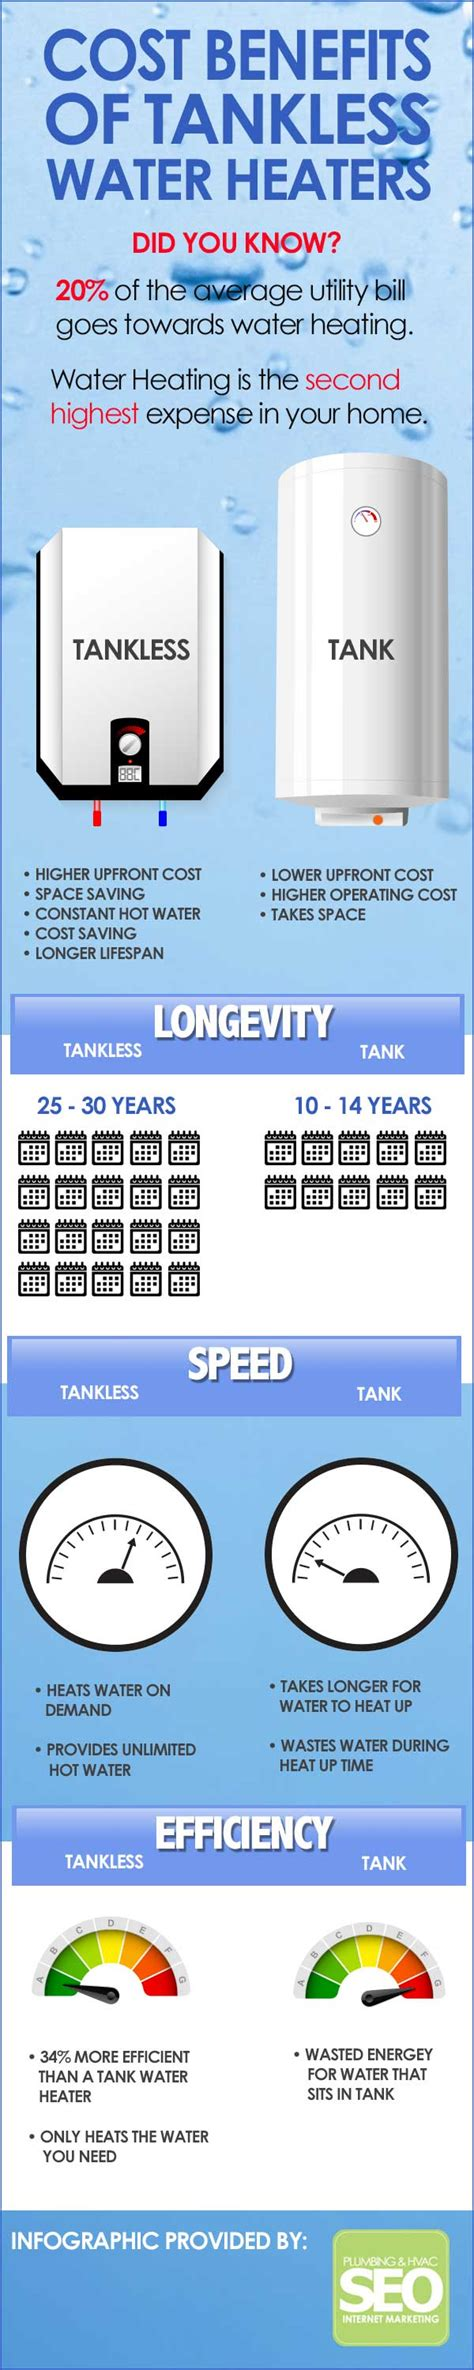 Infographic The Cost Benefits Of Tankless Water Heaters